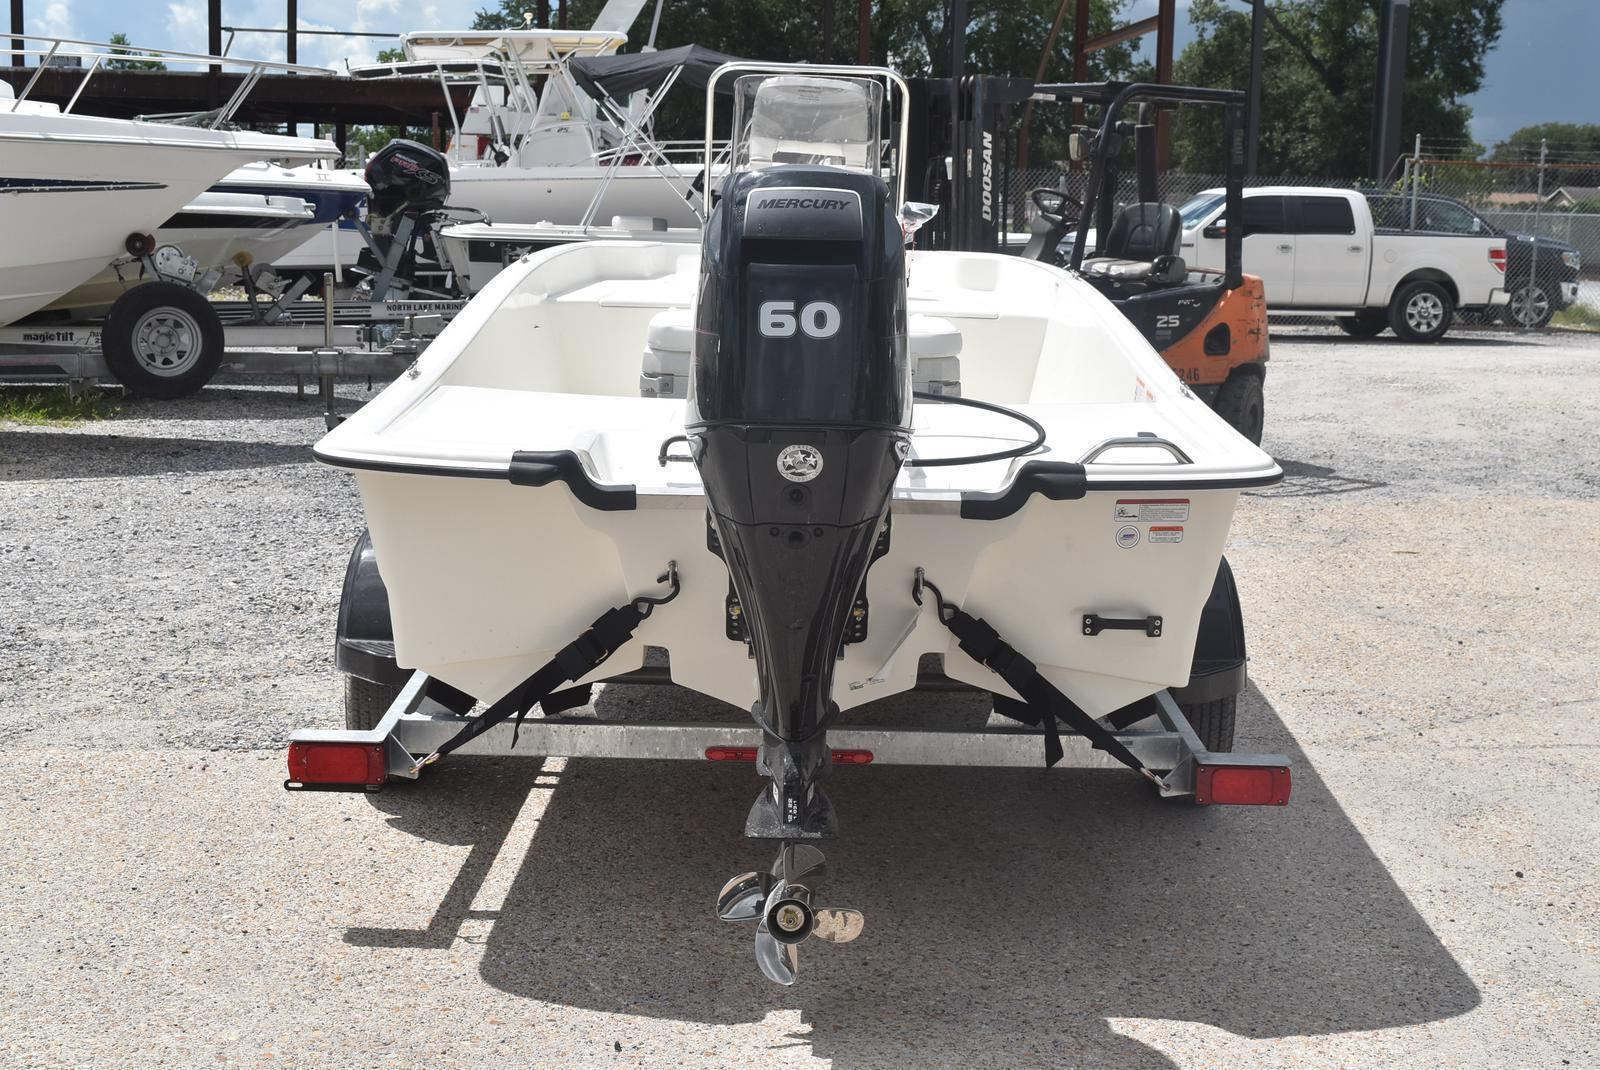 2020 Mako boat for sale, model of the boat is Pro Skiff 17, 75 ELPT & Image # 587 of 702